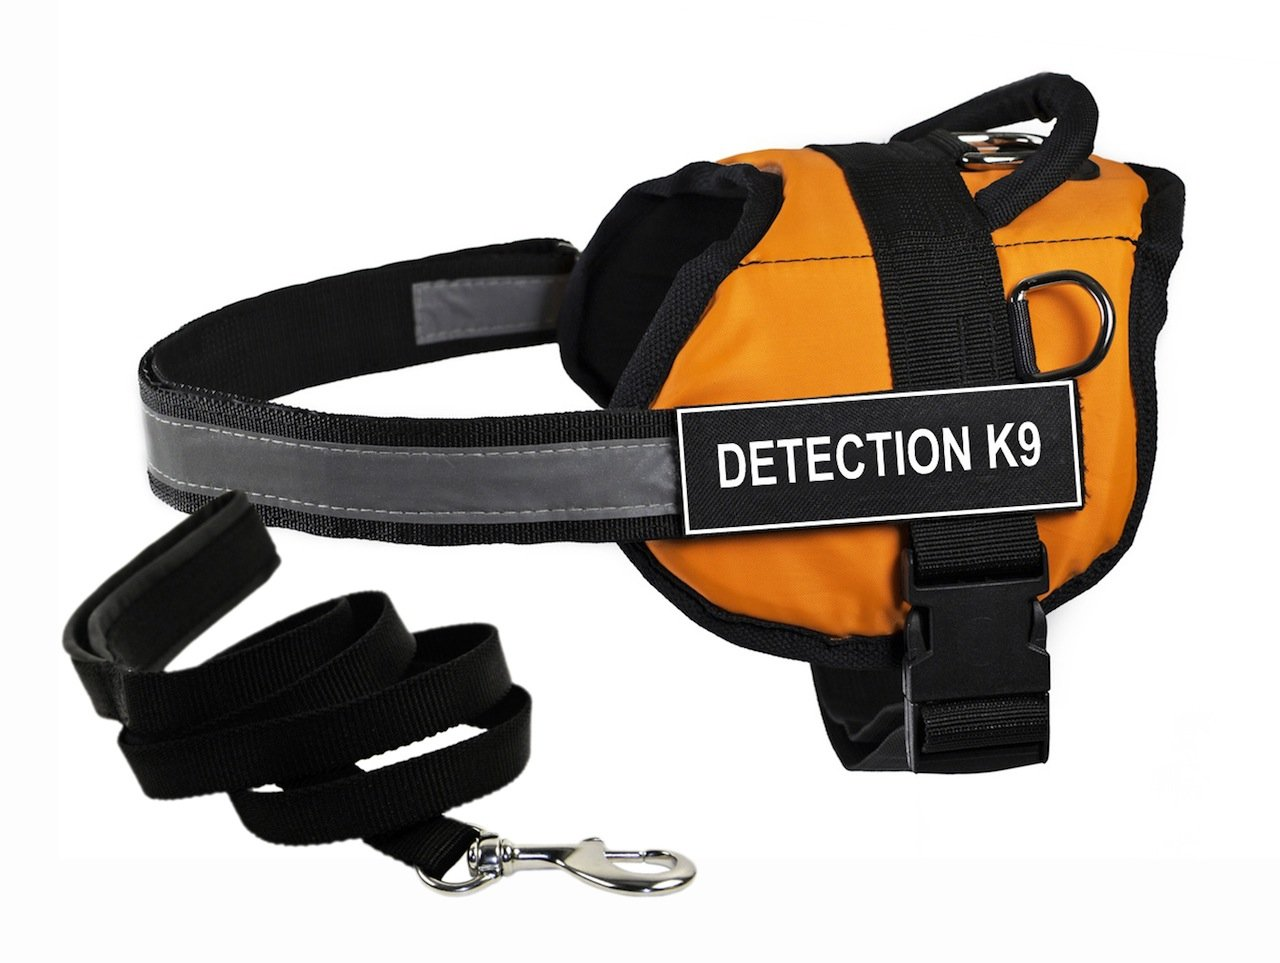 Dean & Tyler's DT Works orange Detection K9  Harness with, XX-Small, and Black 6 ft Padded Puppy Leash.